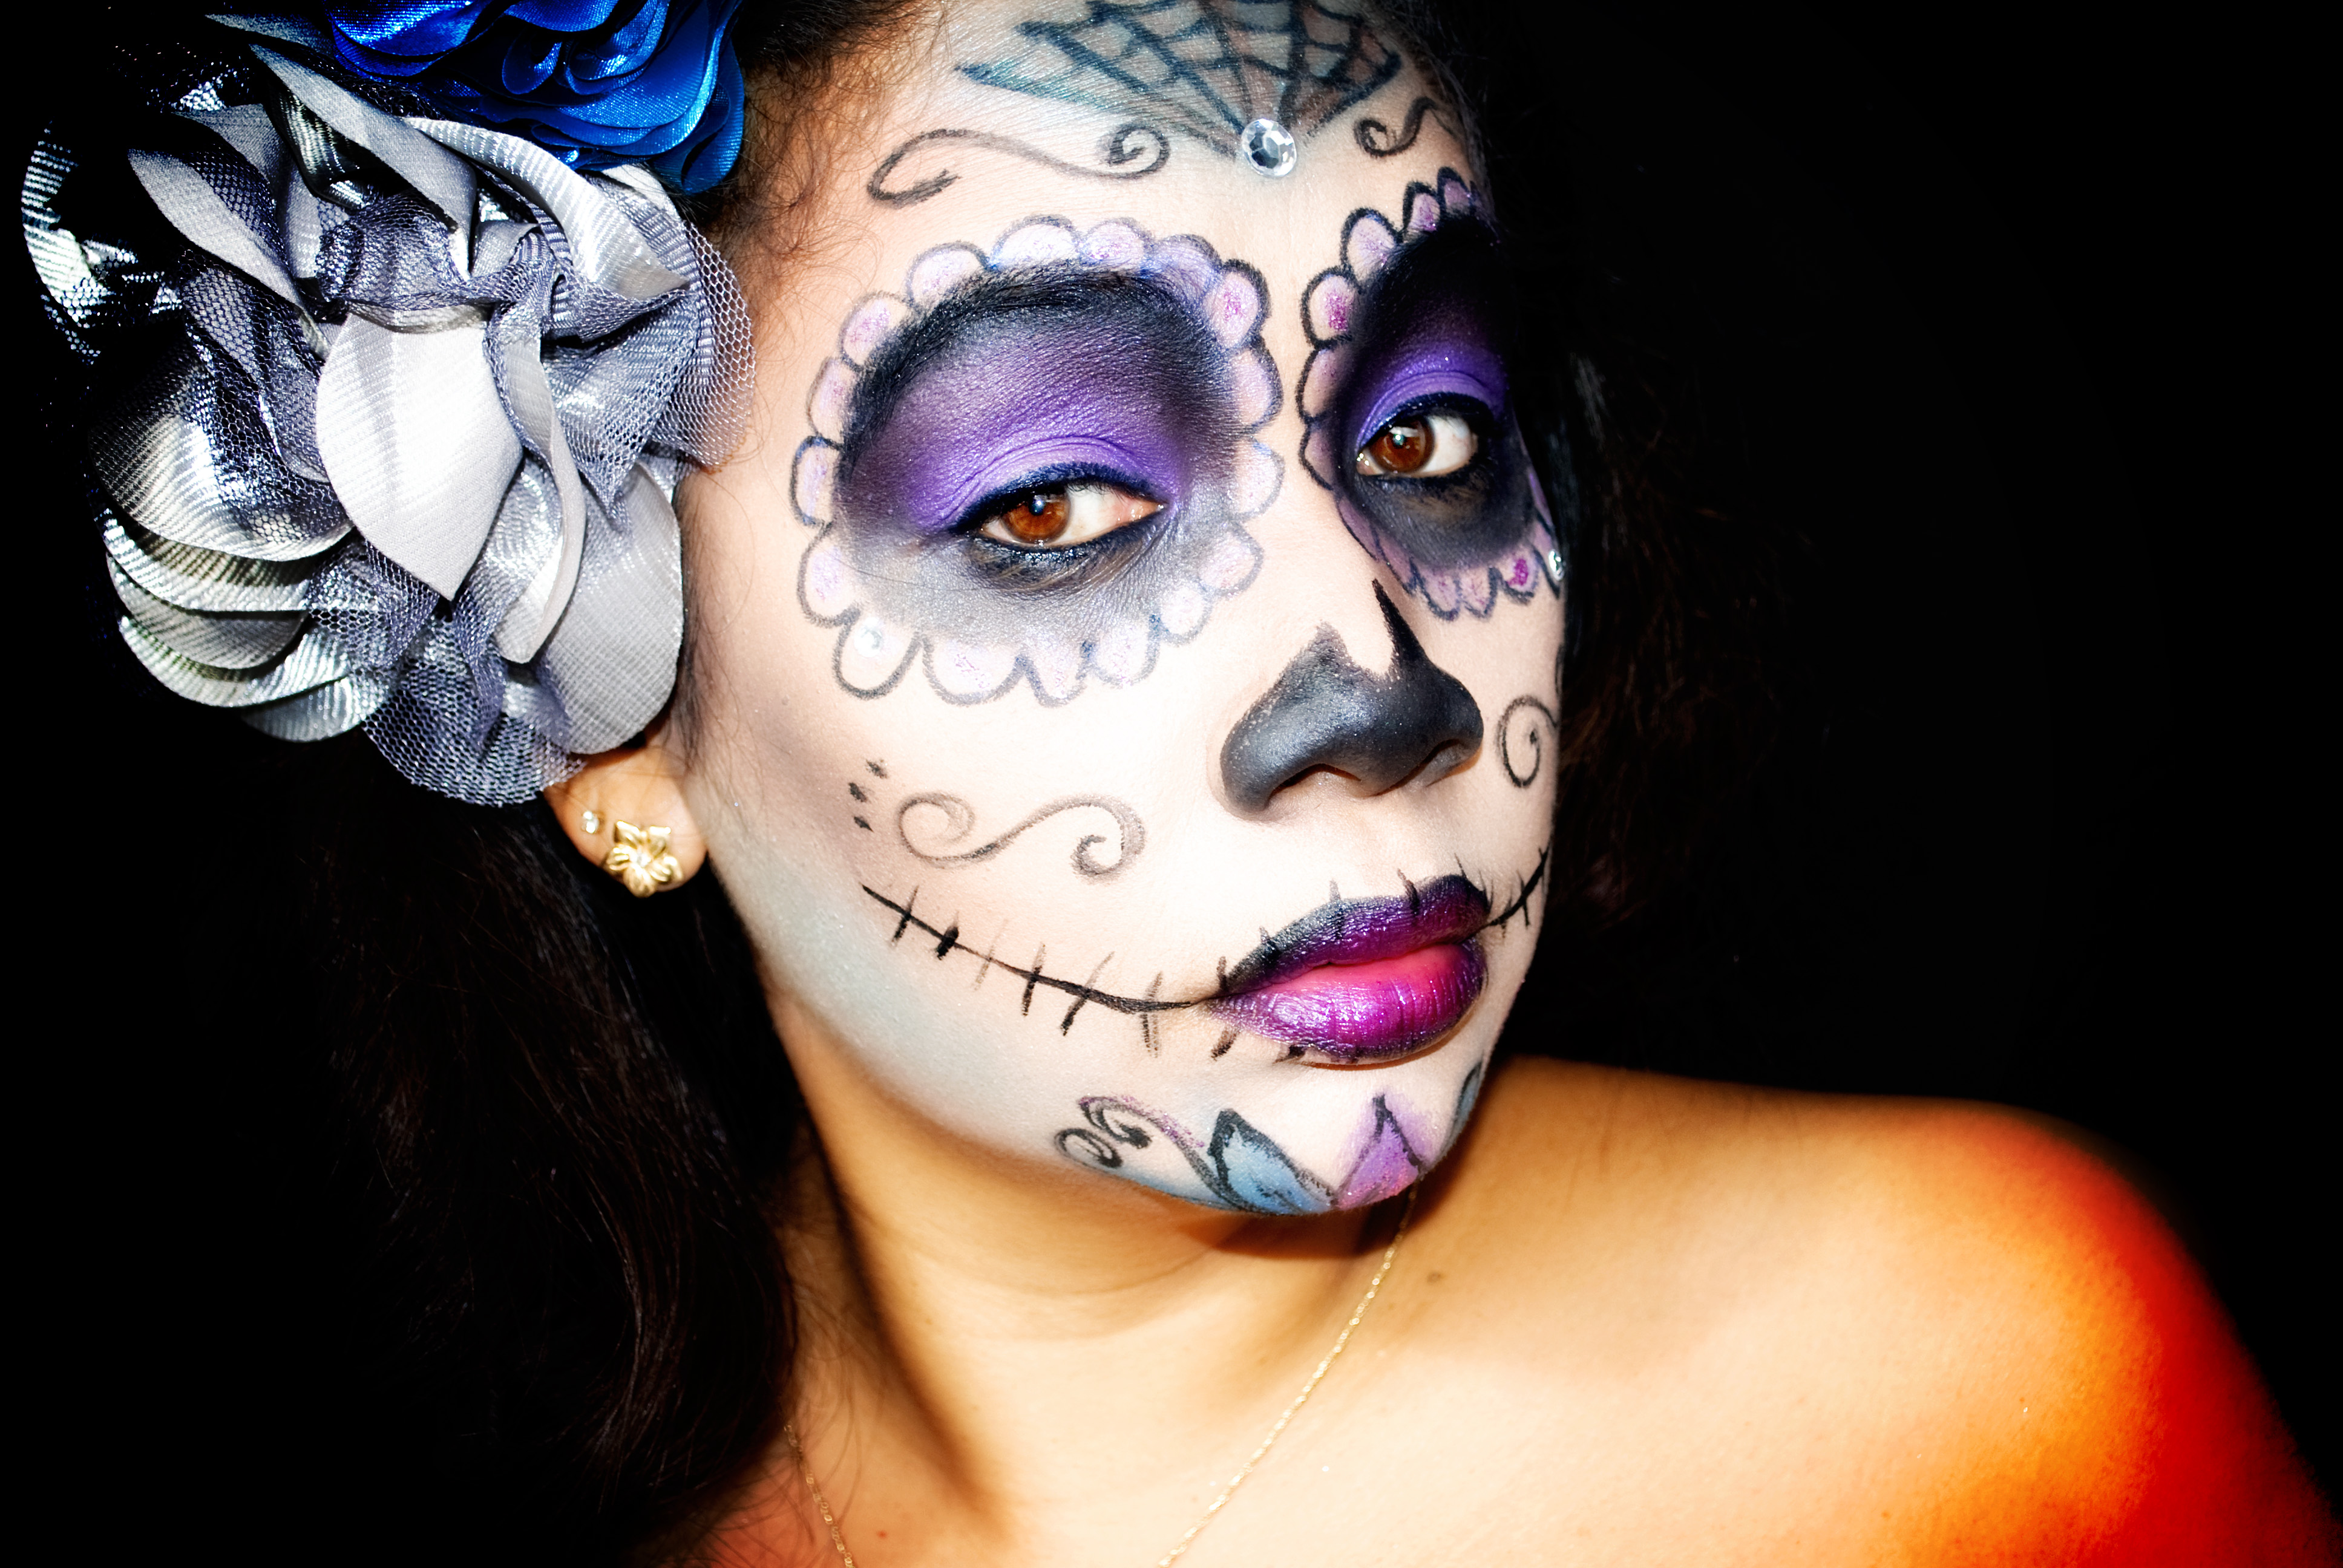 HALLOWEEN MAKEUP TUTORIAL: Sugar Skull Makeup